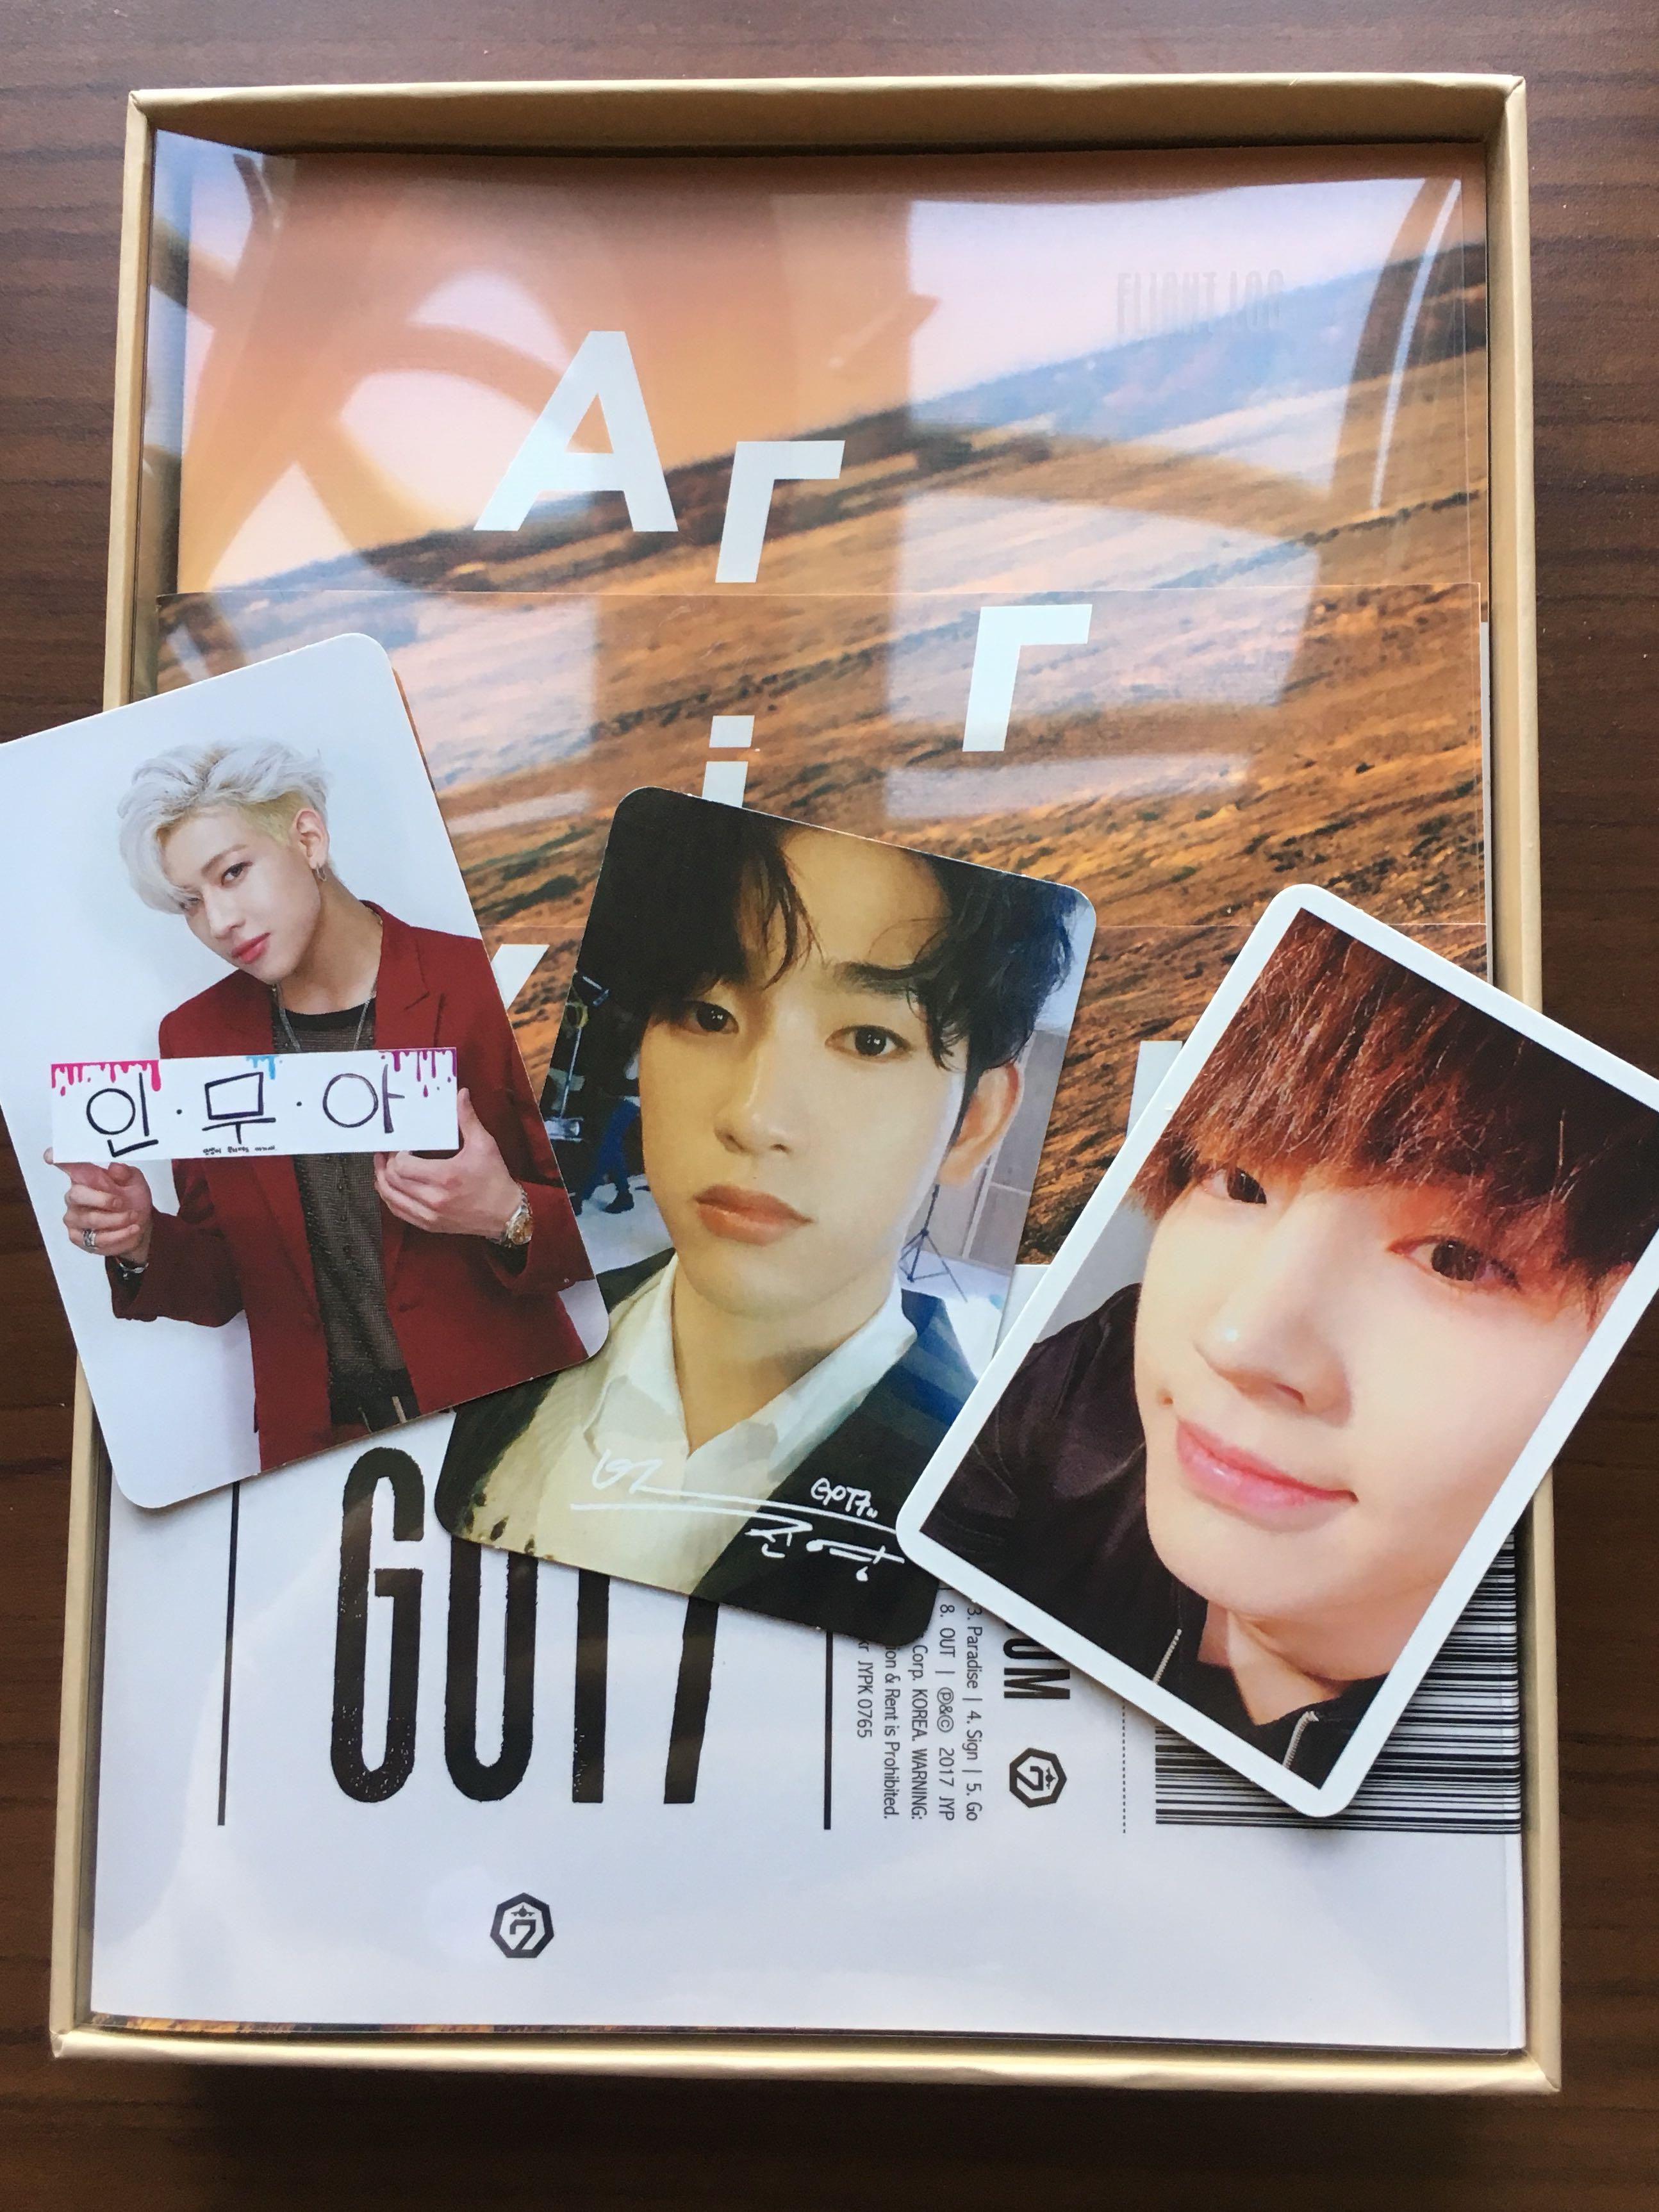 [ WTS ] Got7 Flight Log : Arrival Album